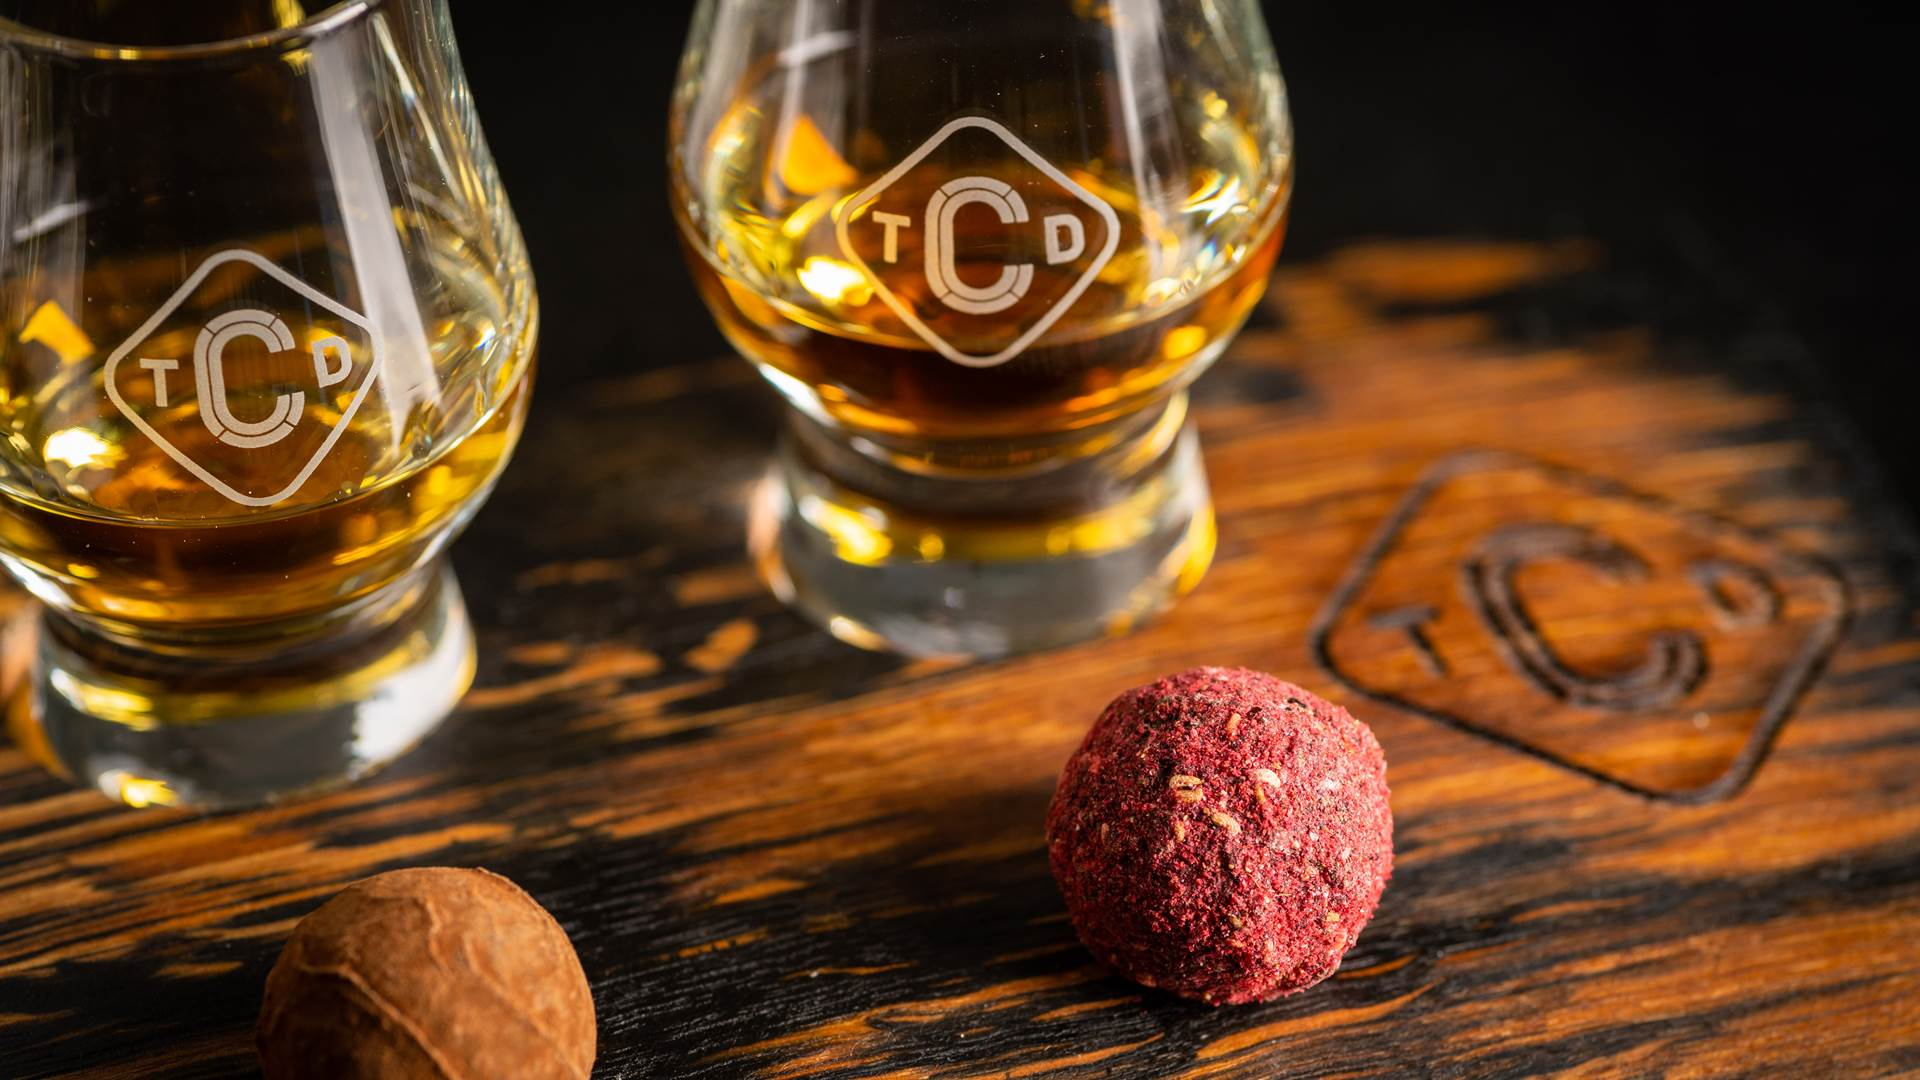 Close up of whisky & chocolate pairing, includes dram of whisky and round coated pink truffle chocolate